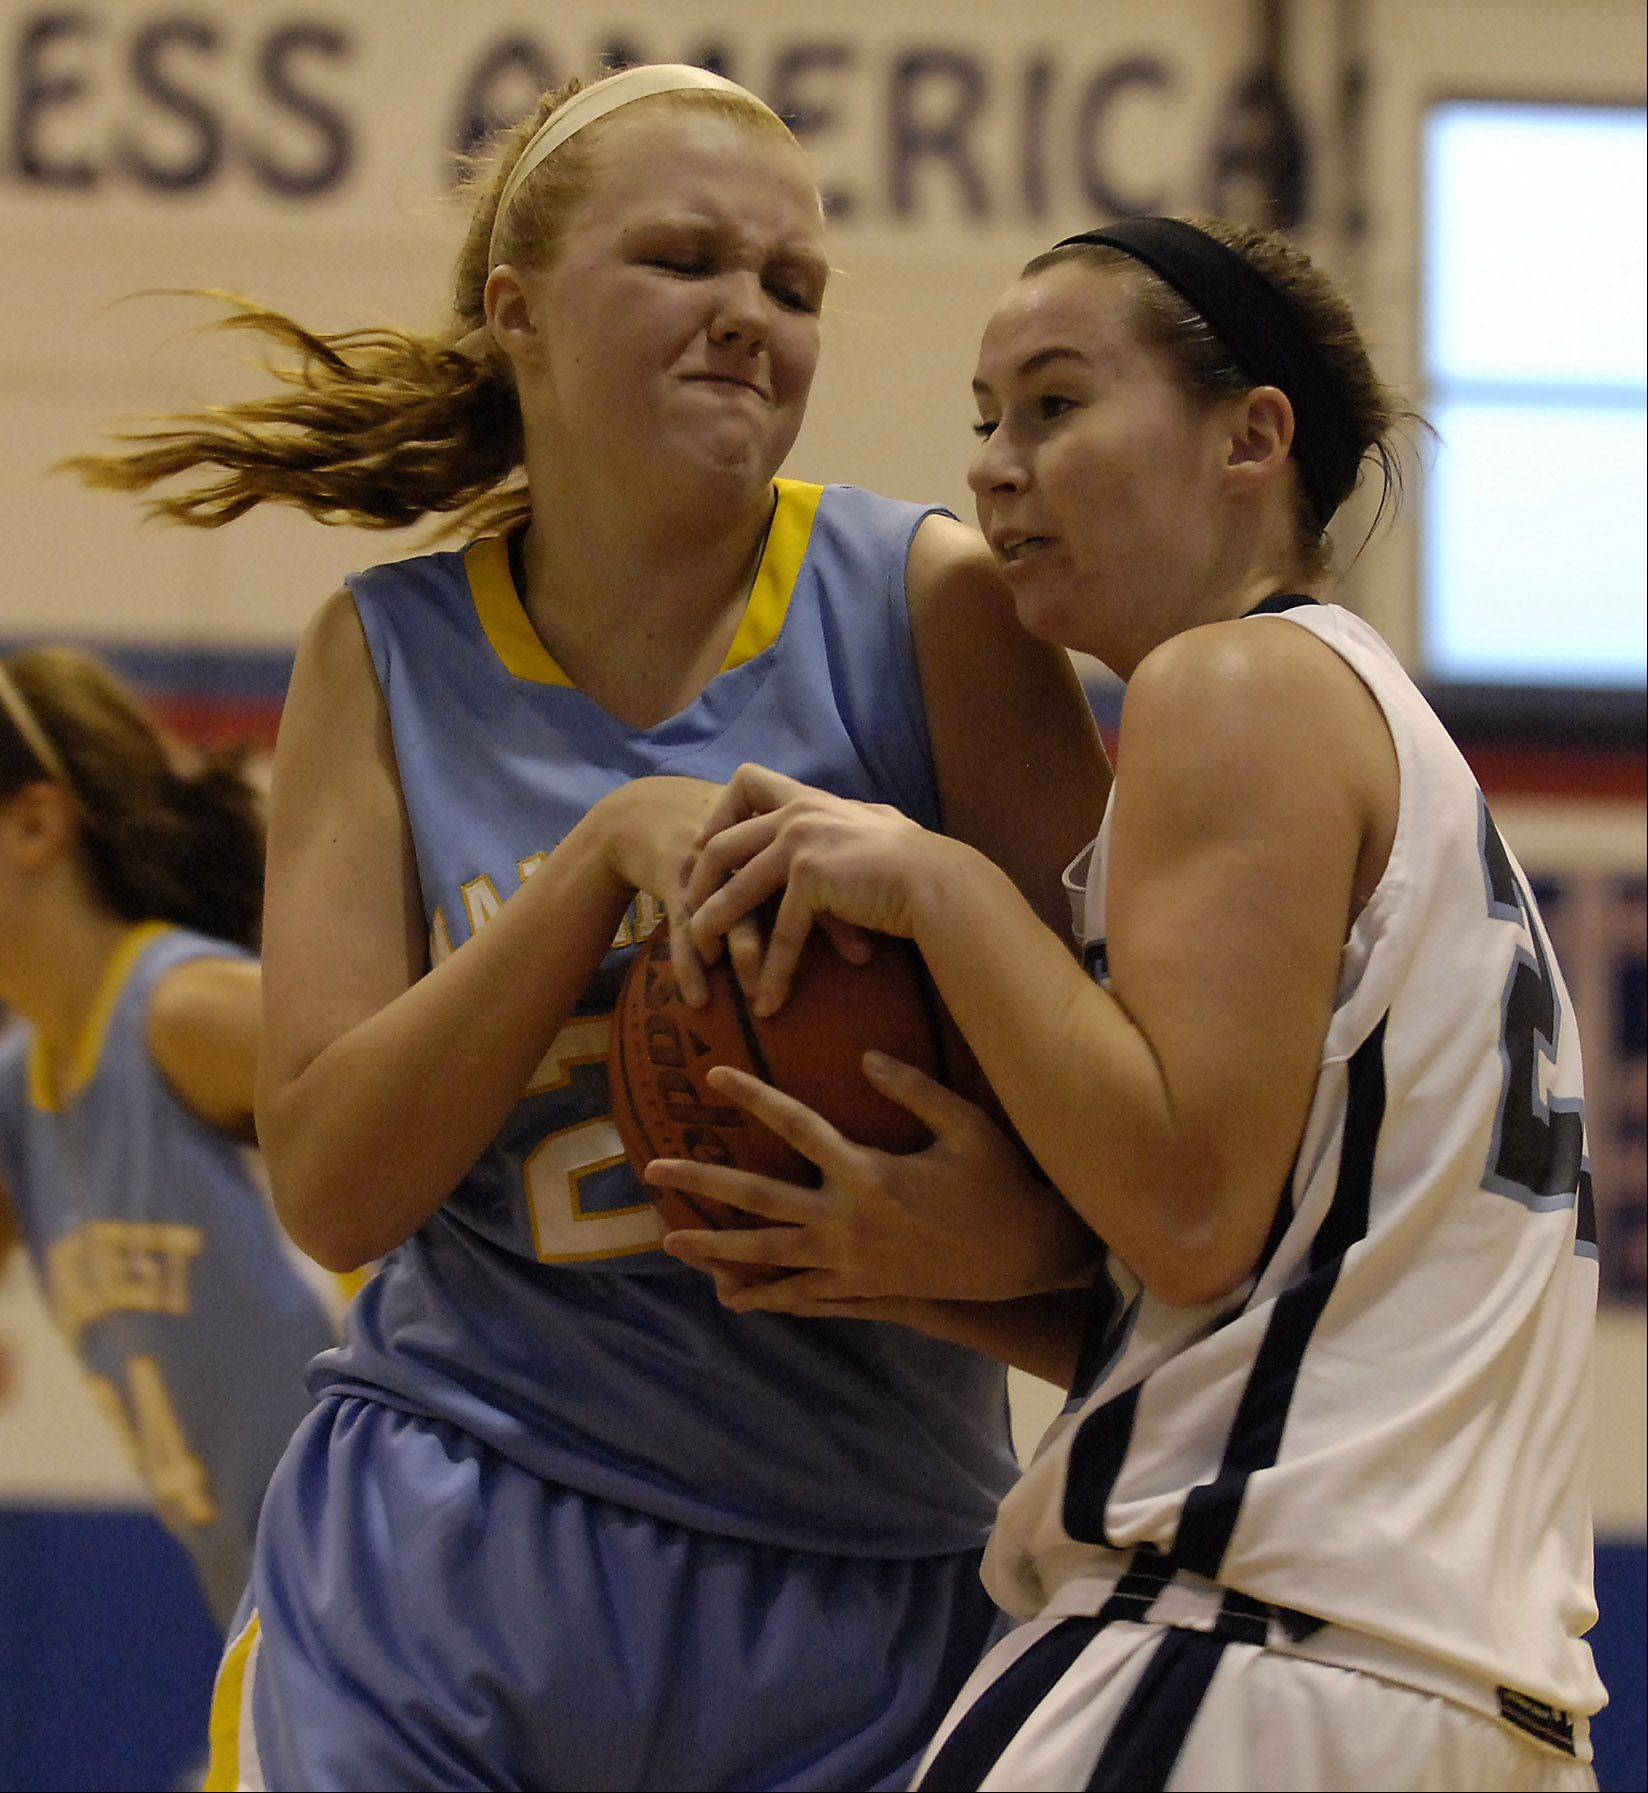 Maine West's Ashley Collins and Prospect's Michele Molini fight for the ball during Monday's basketball game in Carpentersville.